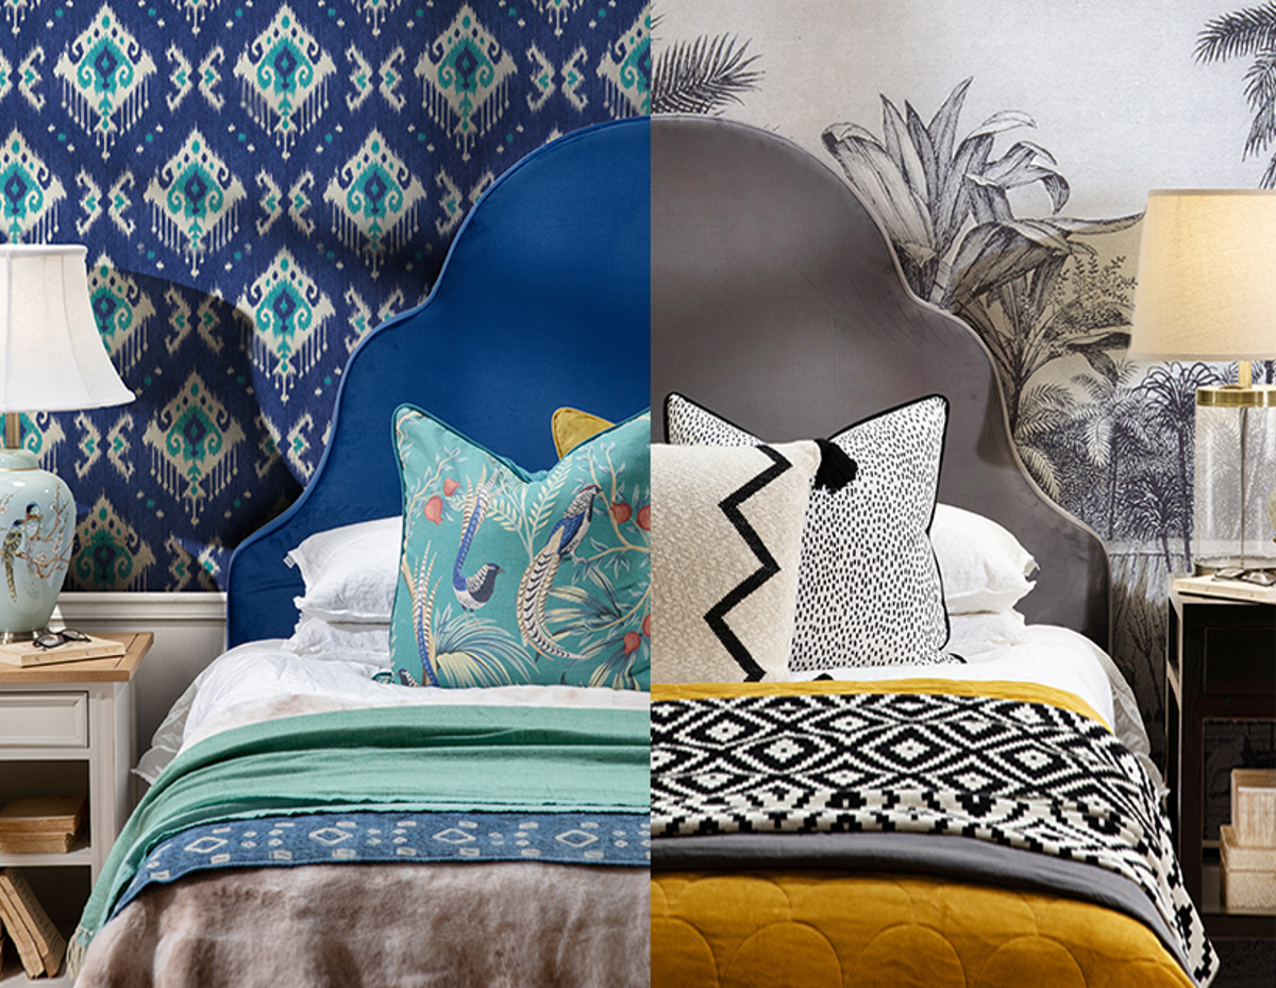 Bring colour into your home beautifully